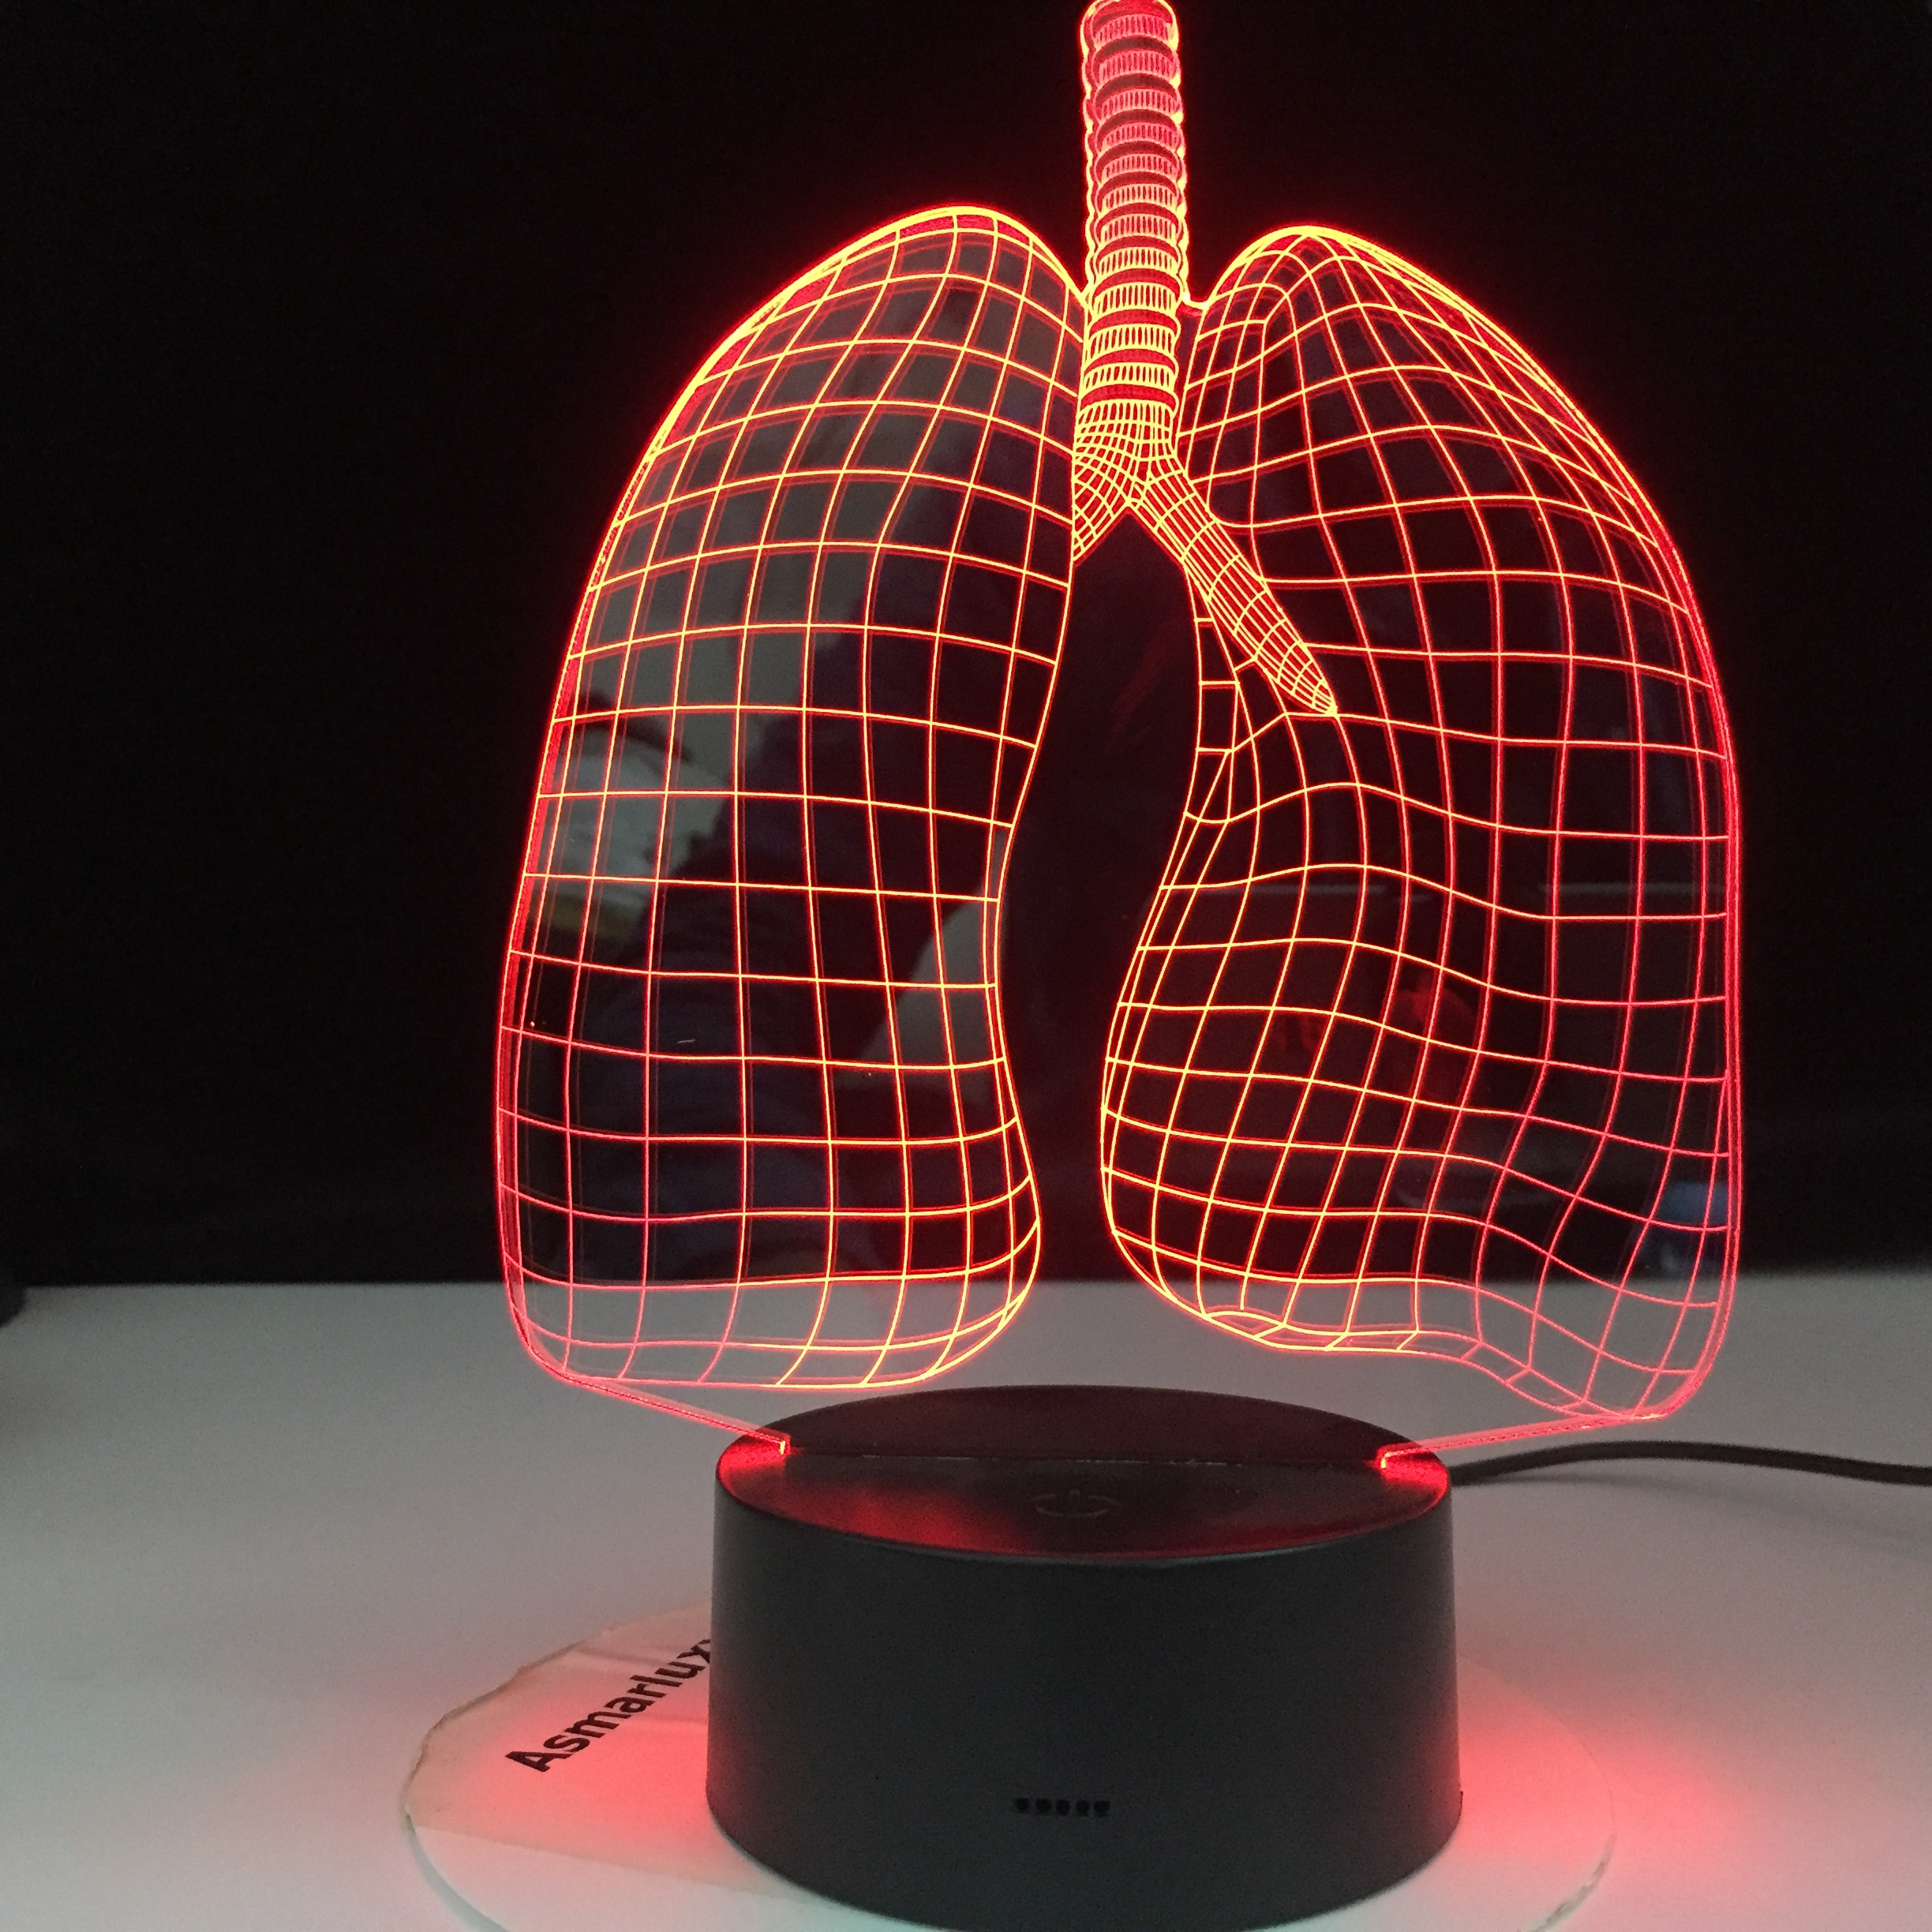 Lungs 3D Illusion Led Night Light Lamp Figure Bedroom Decor Desk Lamp Dropshipping 2020 Gift Nightlight Remote Control